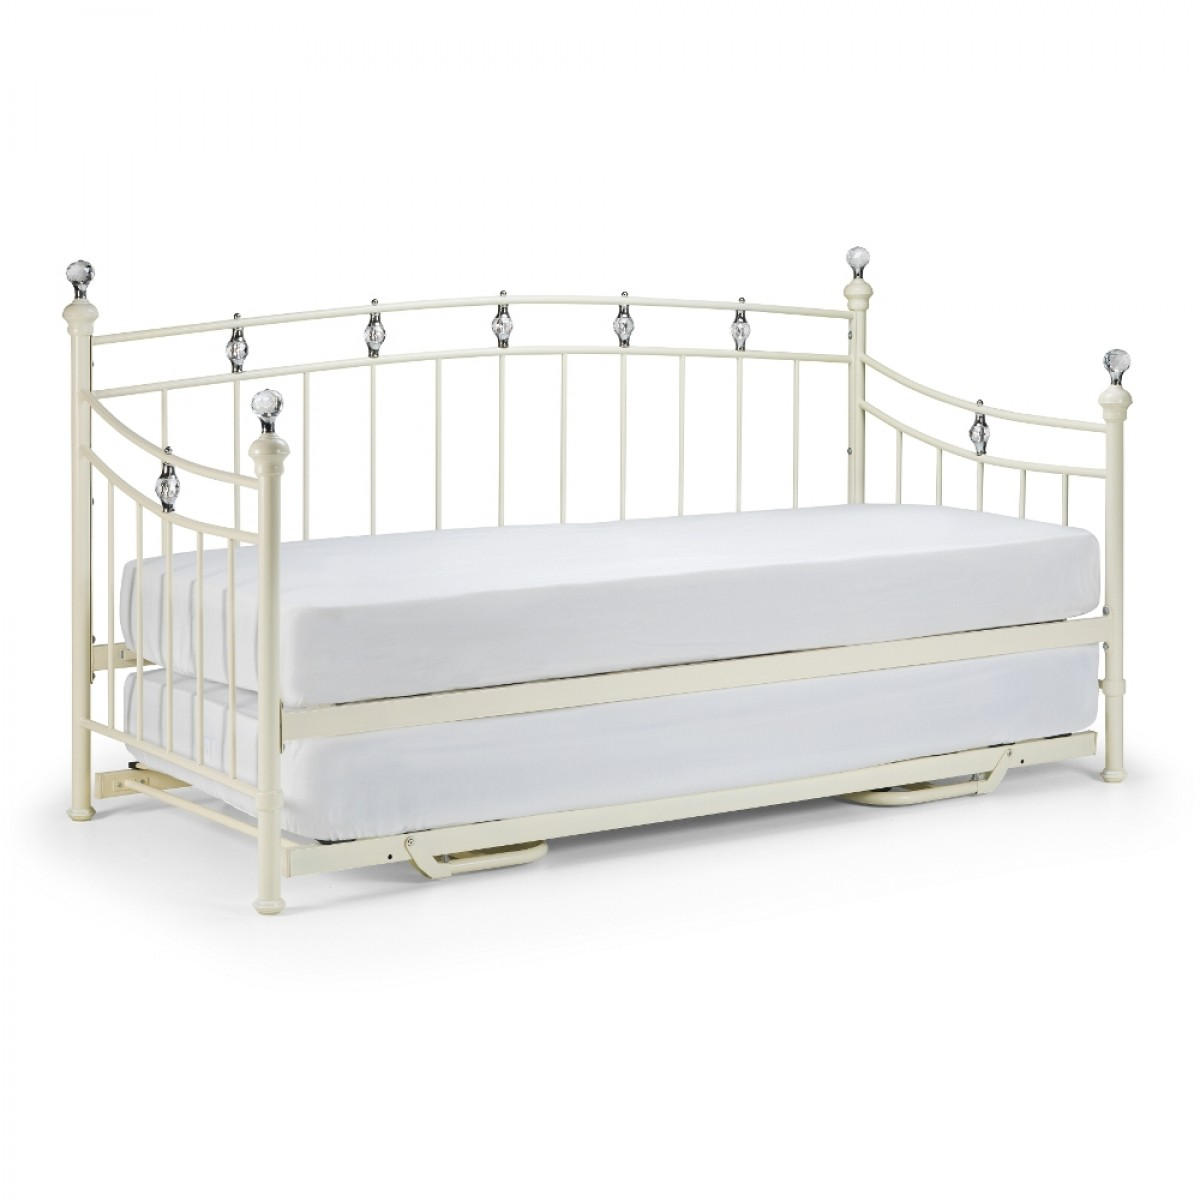 Sophie stone white metal guest bed